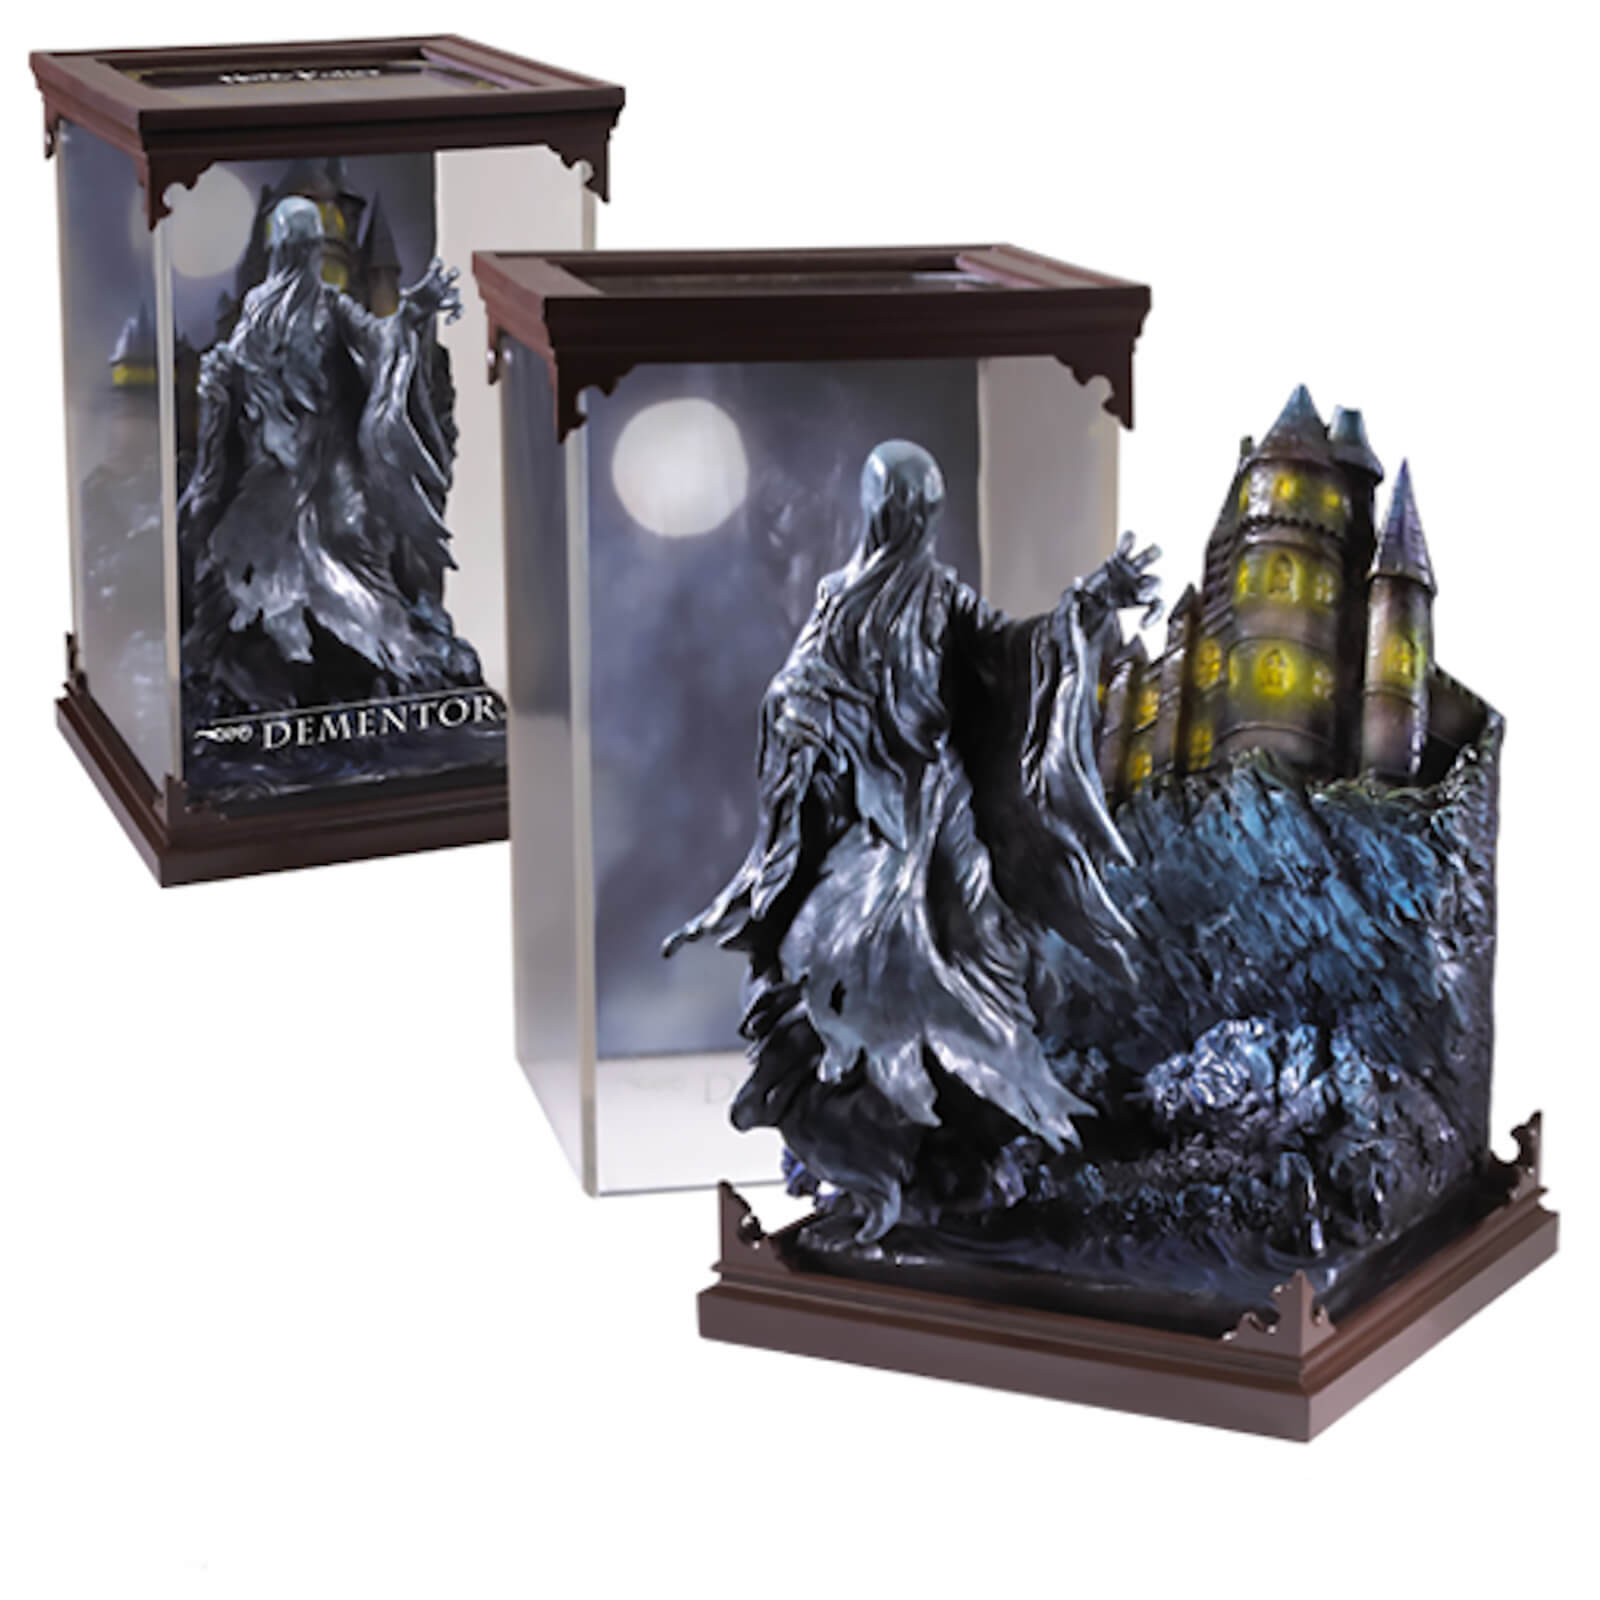 Harry Potter Magical Creatures Dementor Sculpture